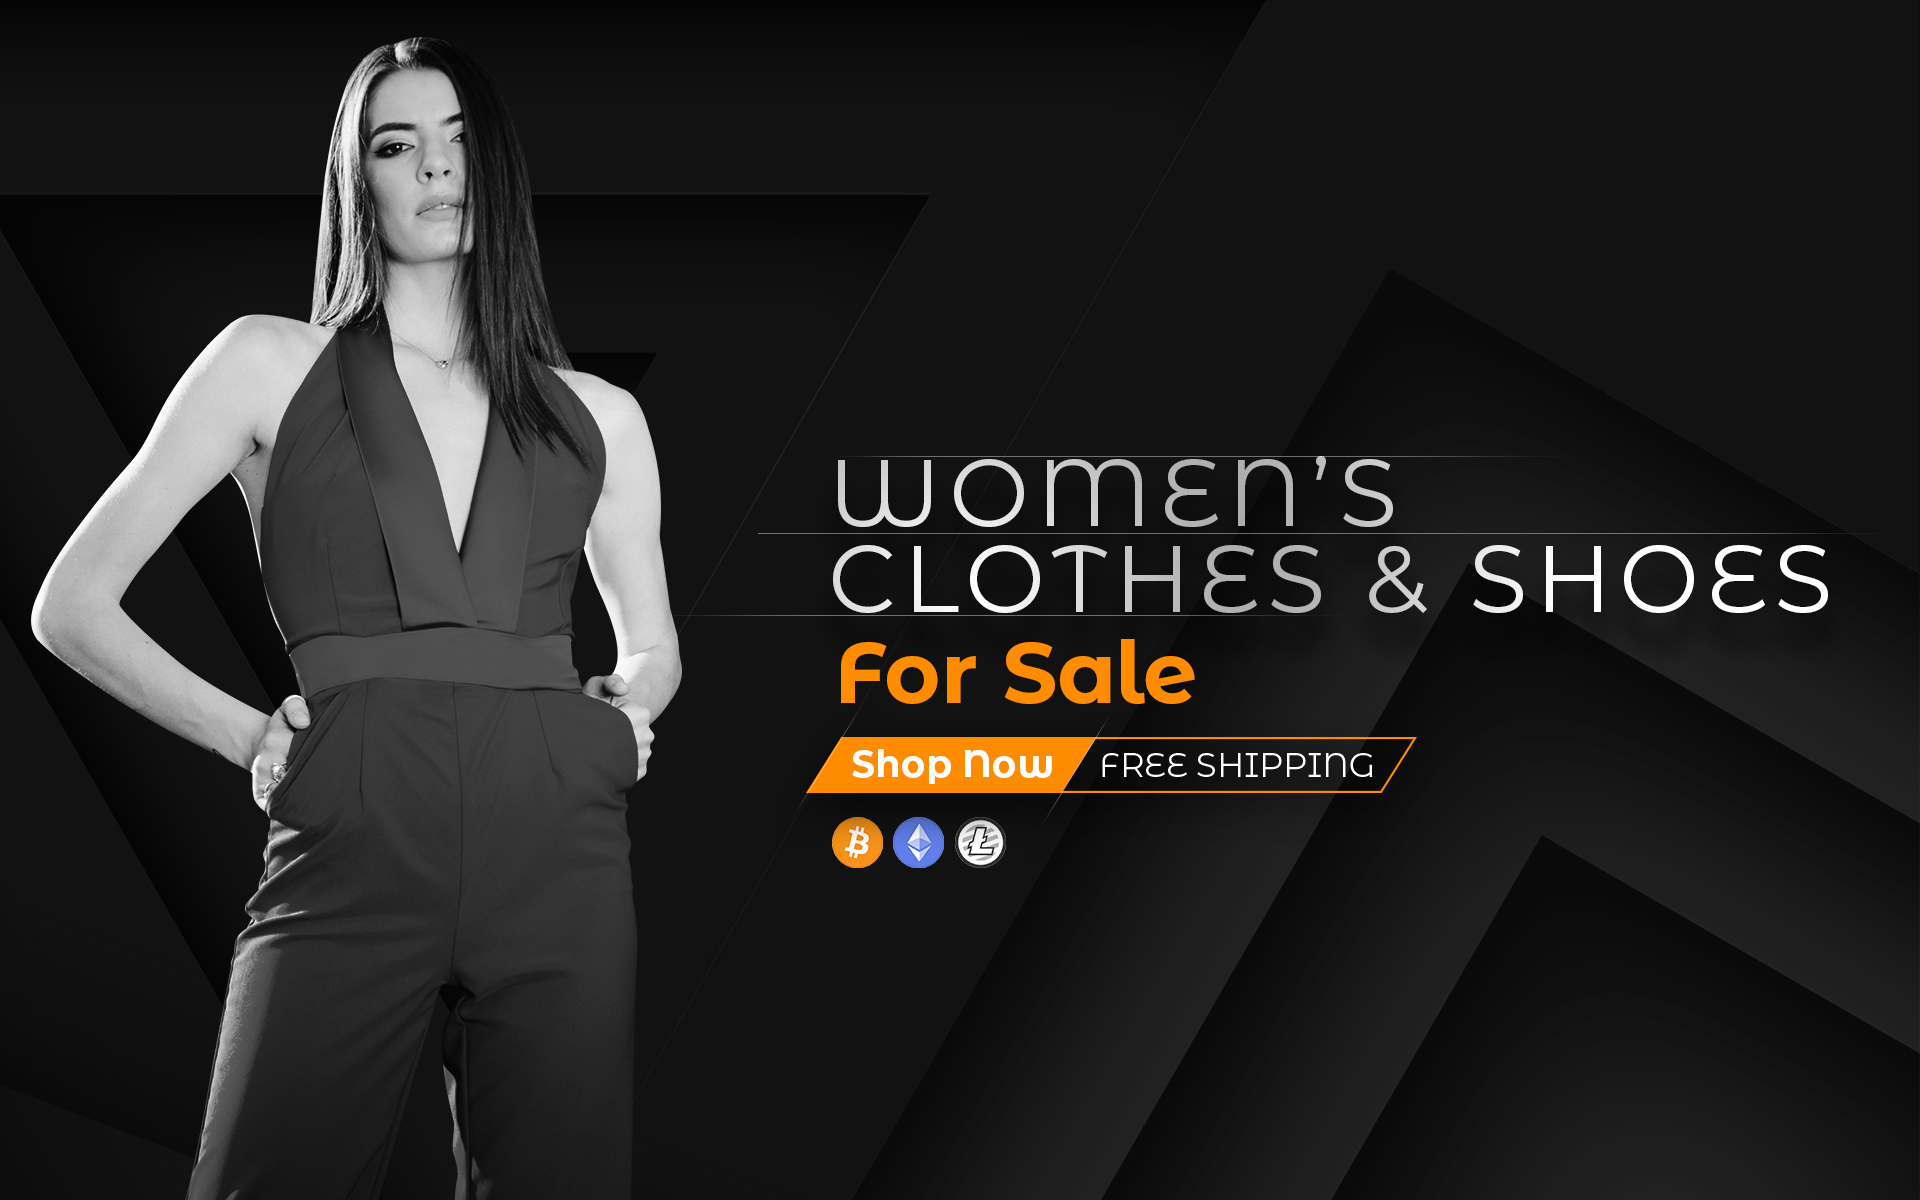 Click to see the latest women's apparels for sale on Gipsybee.com